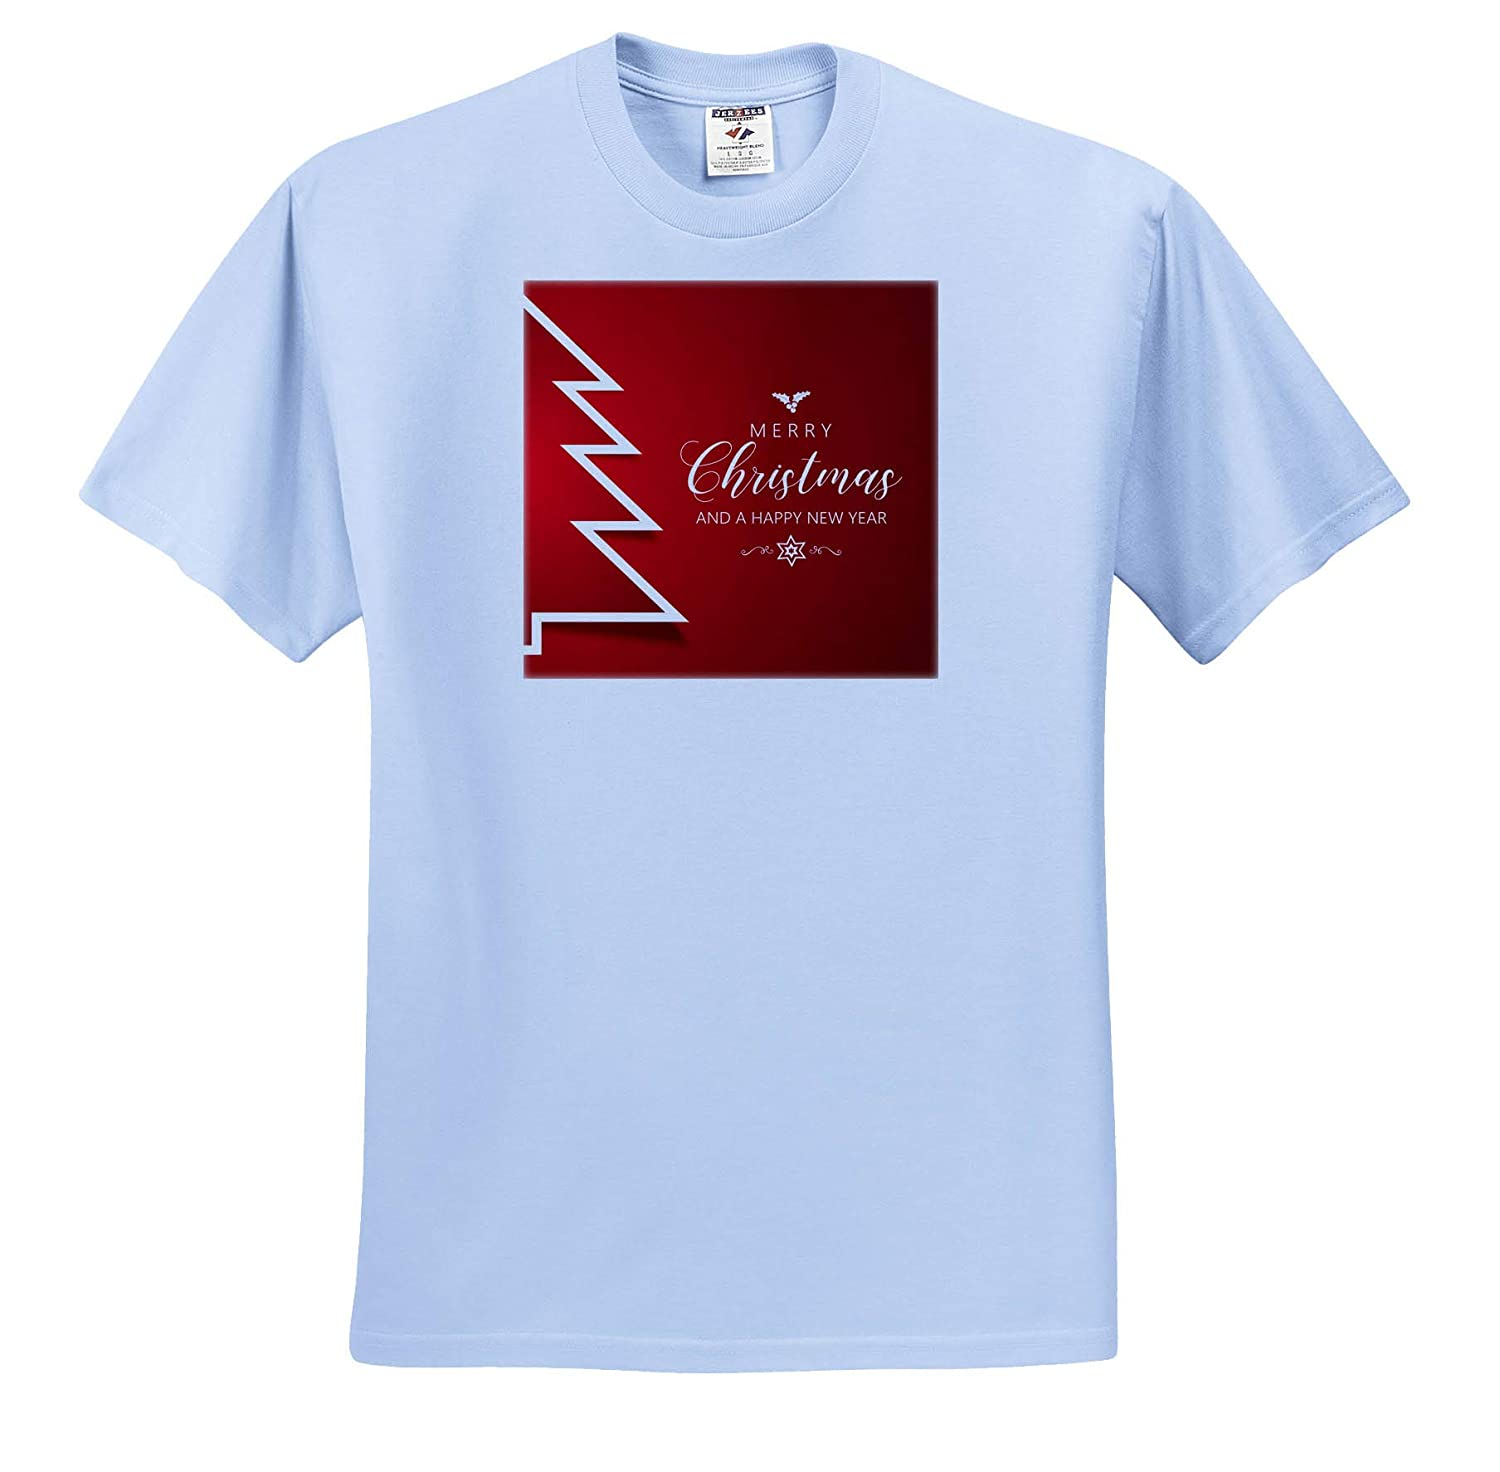 3dRose Sven Herkenrath Christmas Red Background with Merry Christmas and Happy New Year T-Shirts